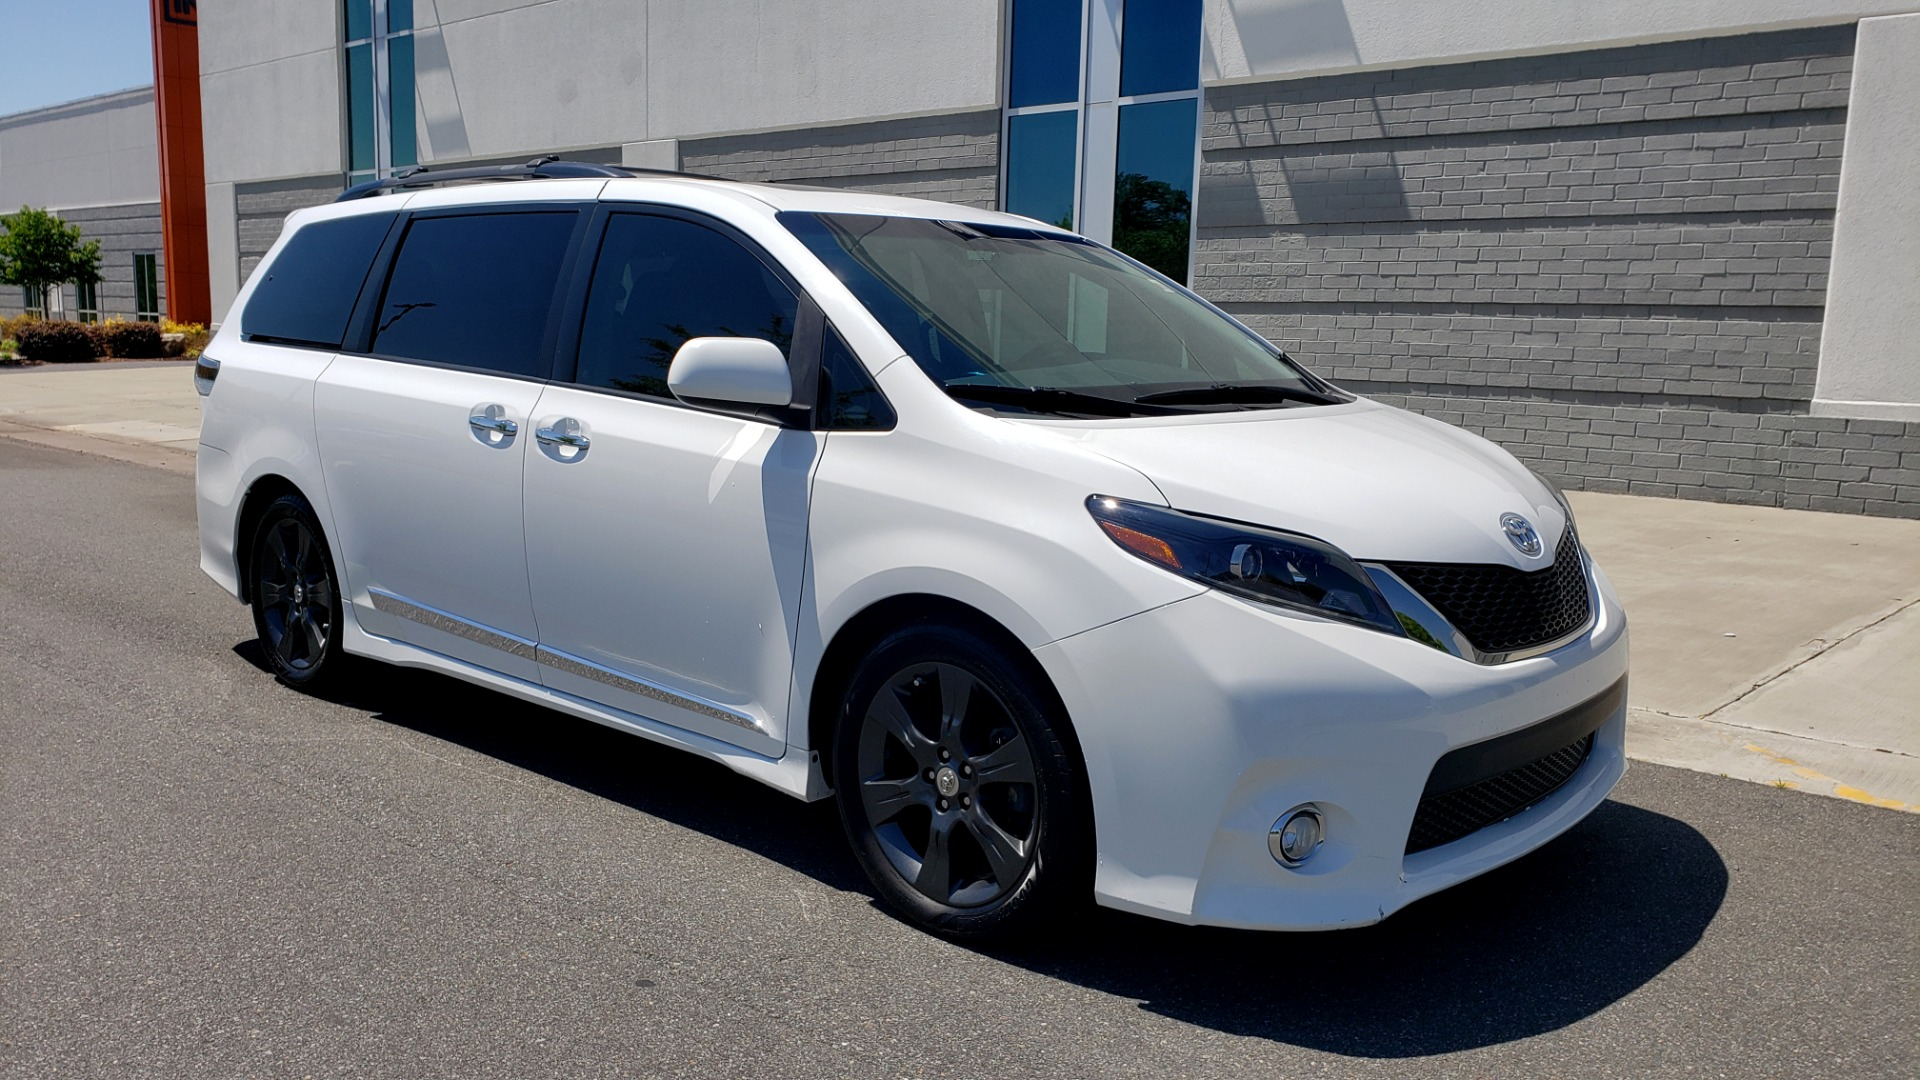 Used 2015 Toyota SIENNA SE 3.5L / FWD / 3-ROWS / 8-PASS / SUNROOF / DVD / REARVIEW for sale $21,995 at Formula Imports in Charlotte NC 28227 11